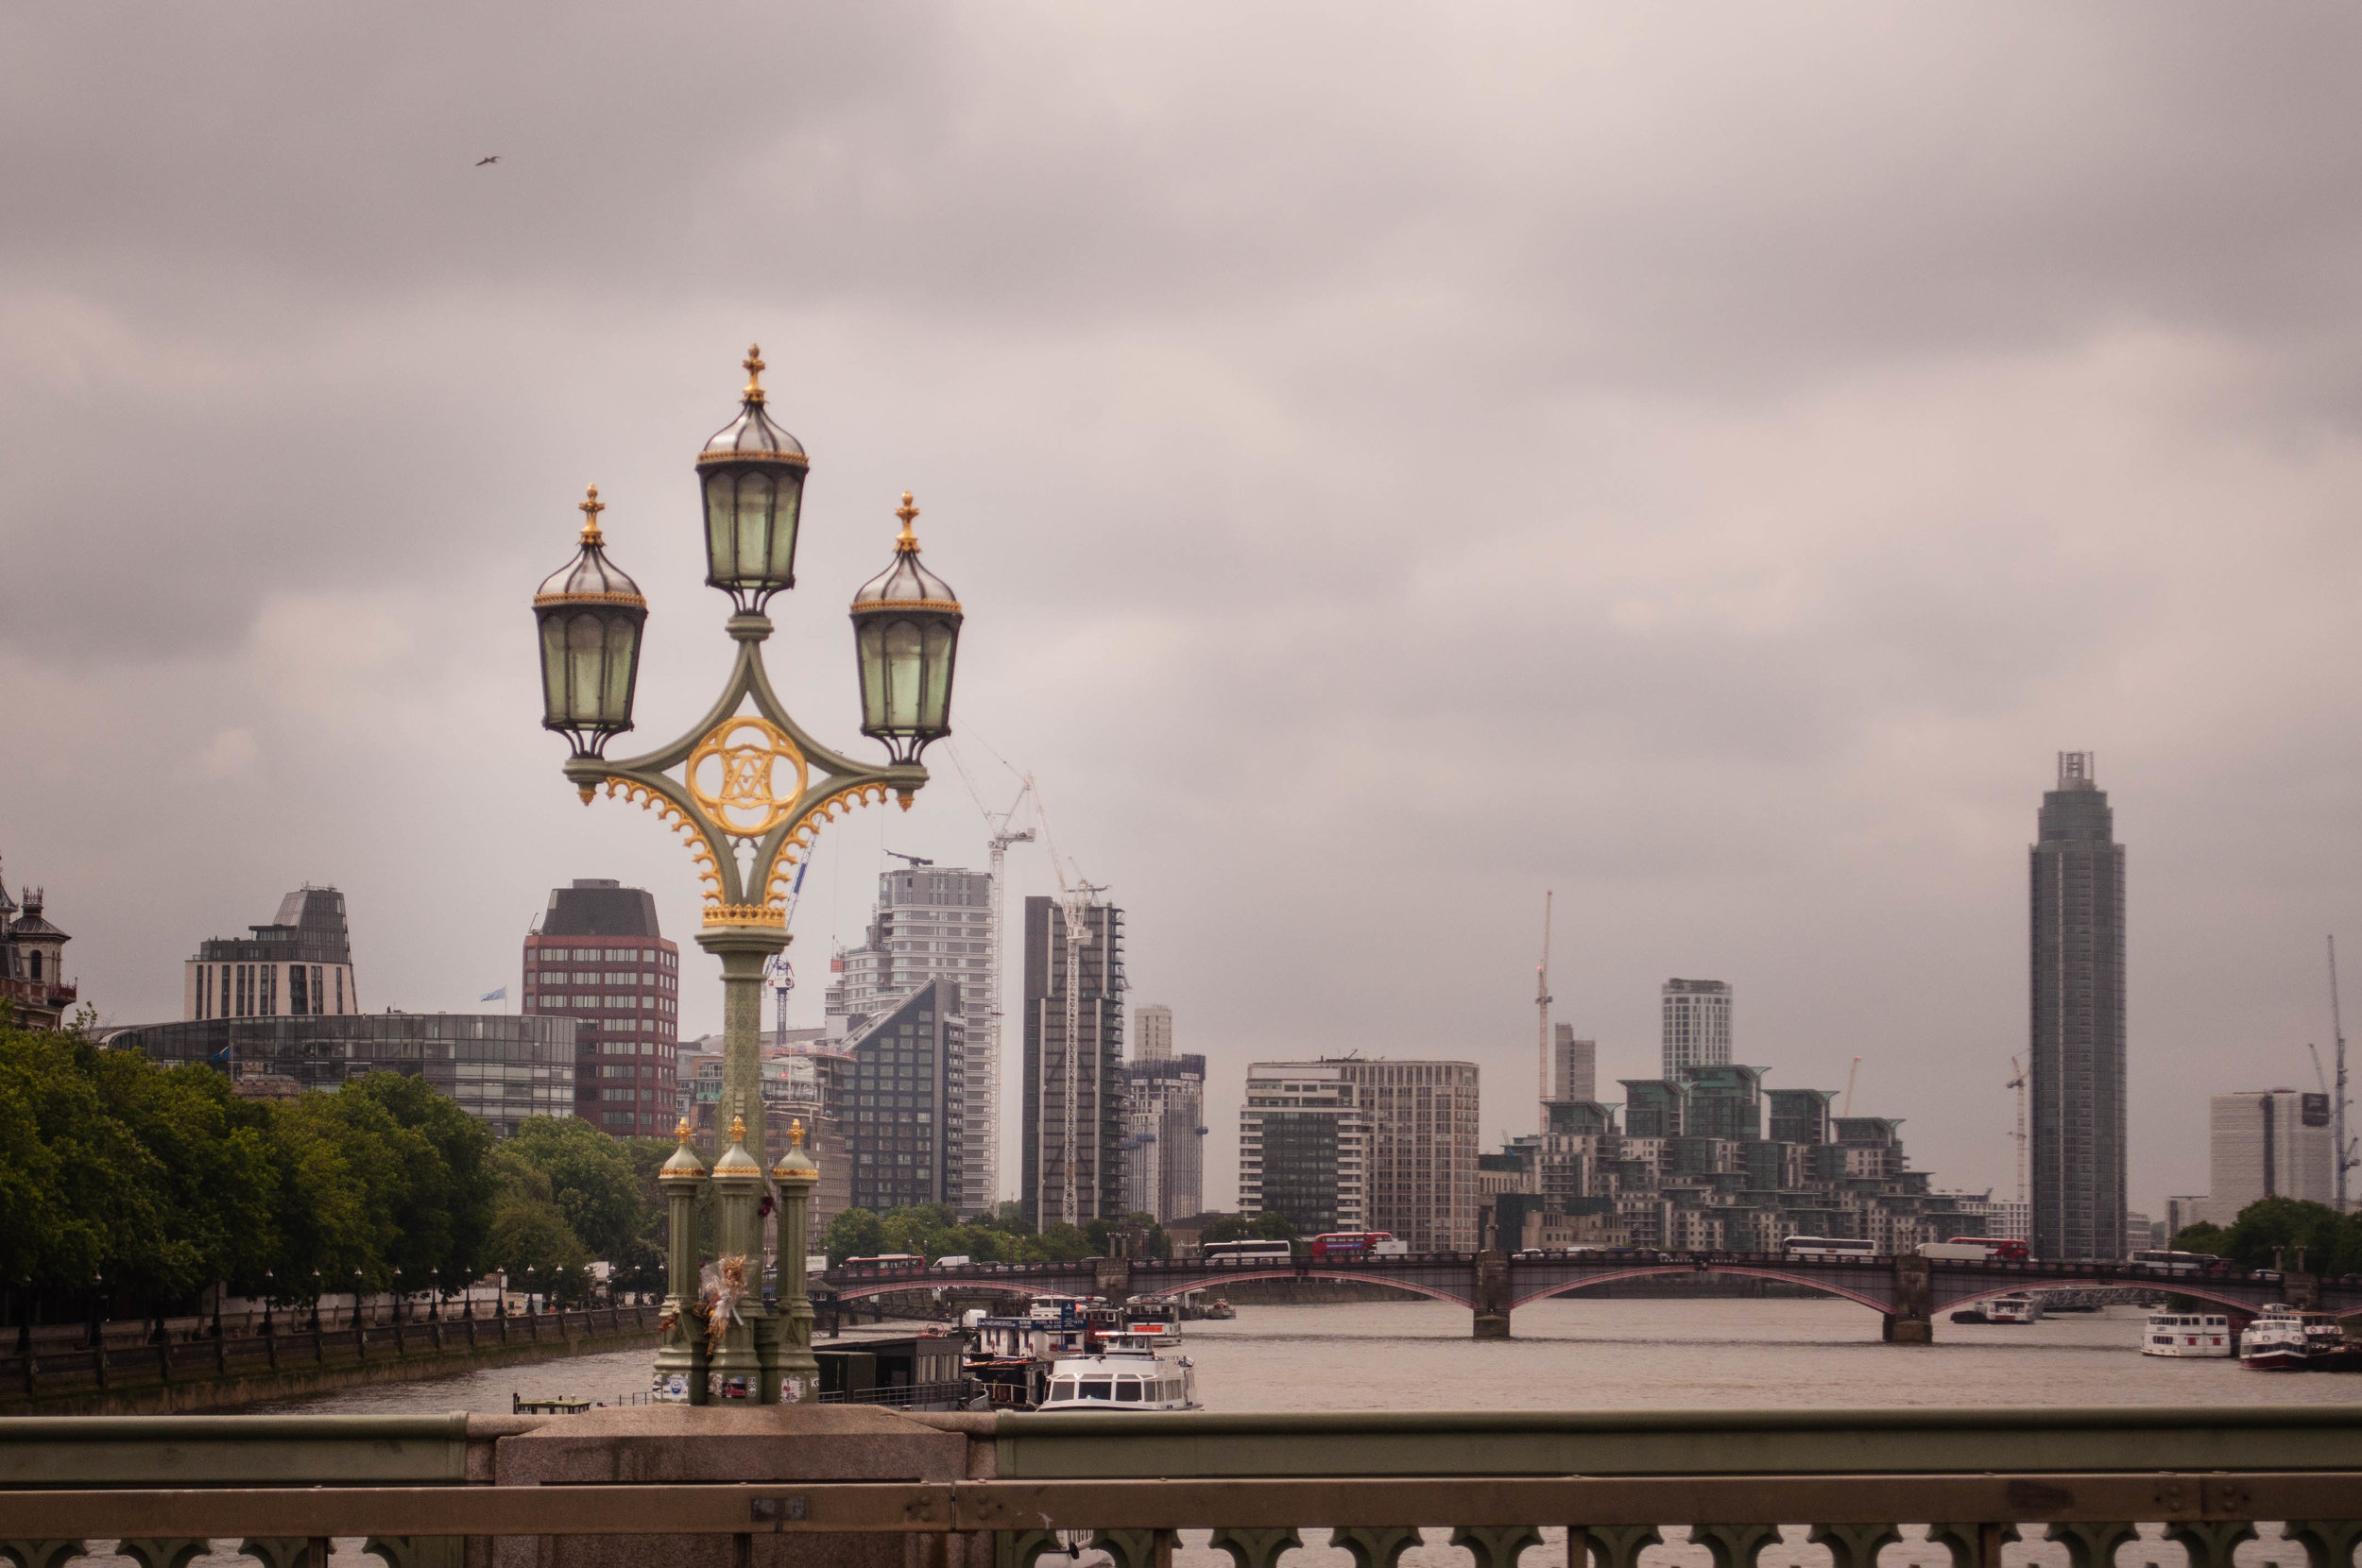 Bridge in London with a gold and green lamp post with skyscraper buildings in the background. This landmark can be seeing during a long layover in London (UK). Sightseeing in 8 hour layover in London